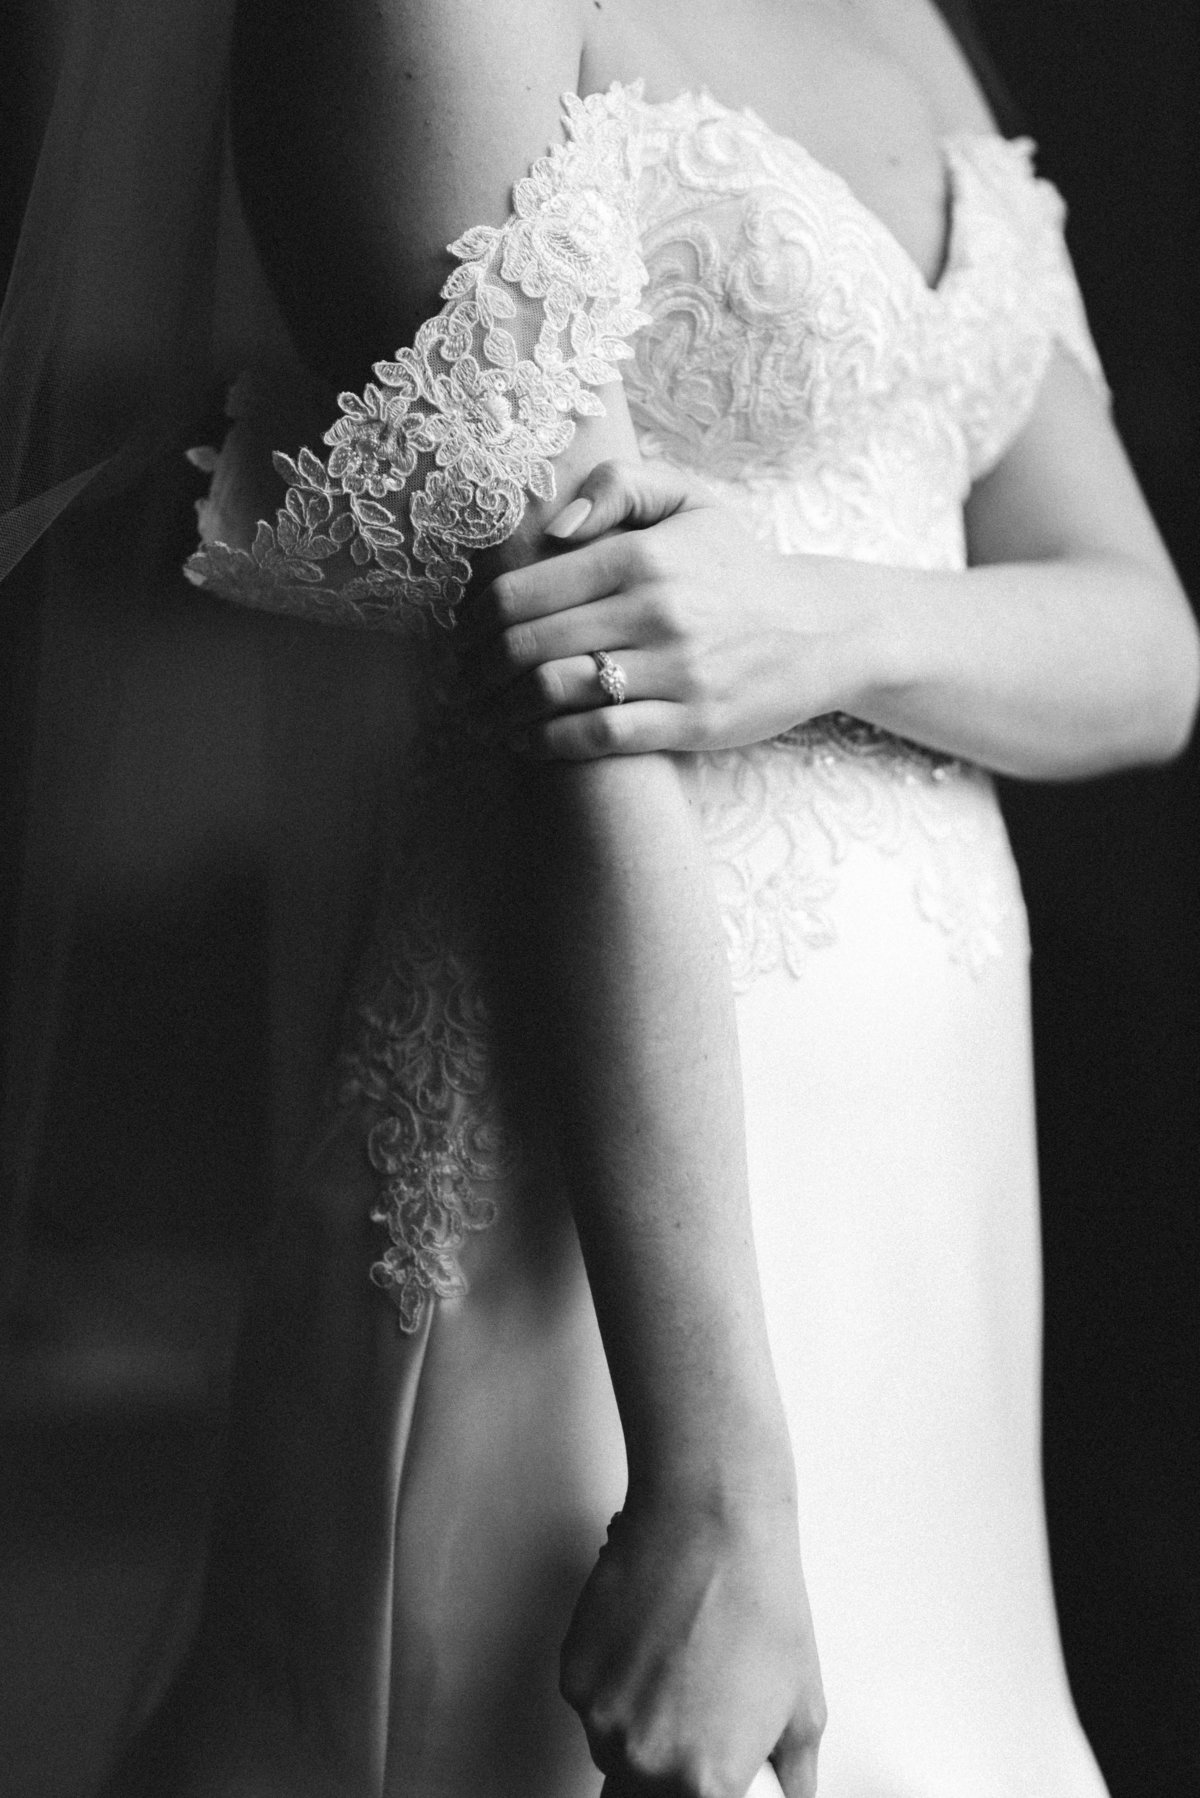 mrandmrsarcher-wedding-meganbridals-281